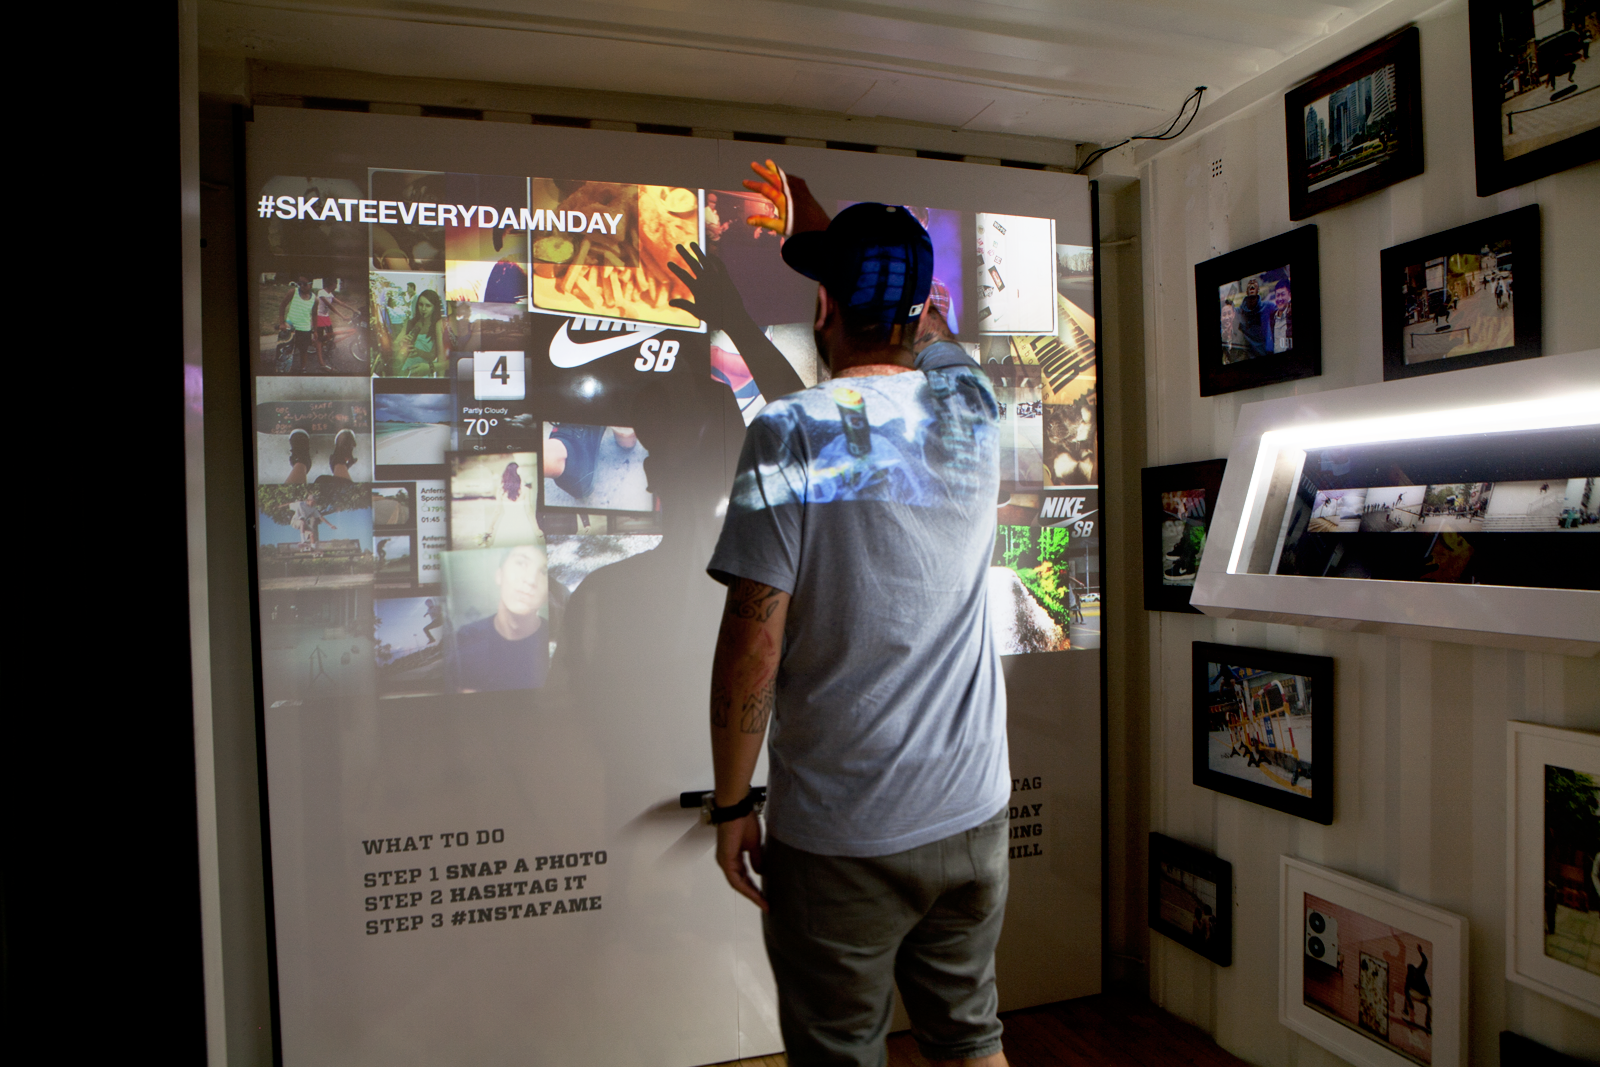 container#2: 10 years of Nike Sb arcade slider and interactive #skateeverydamnday social media aggregator wall